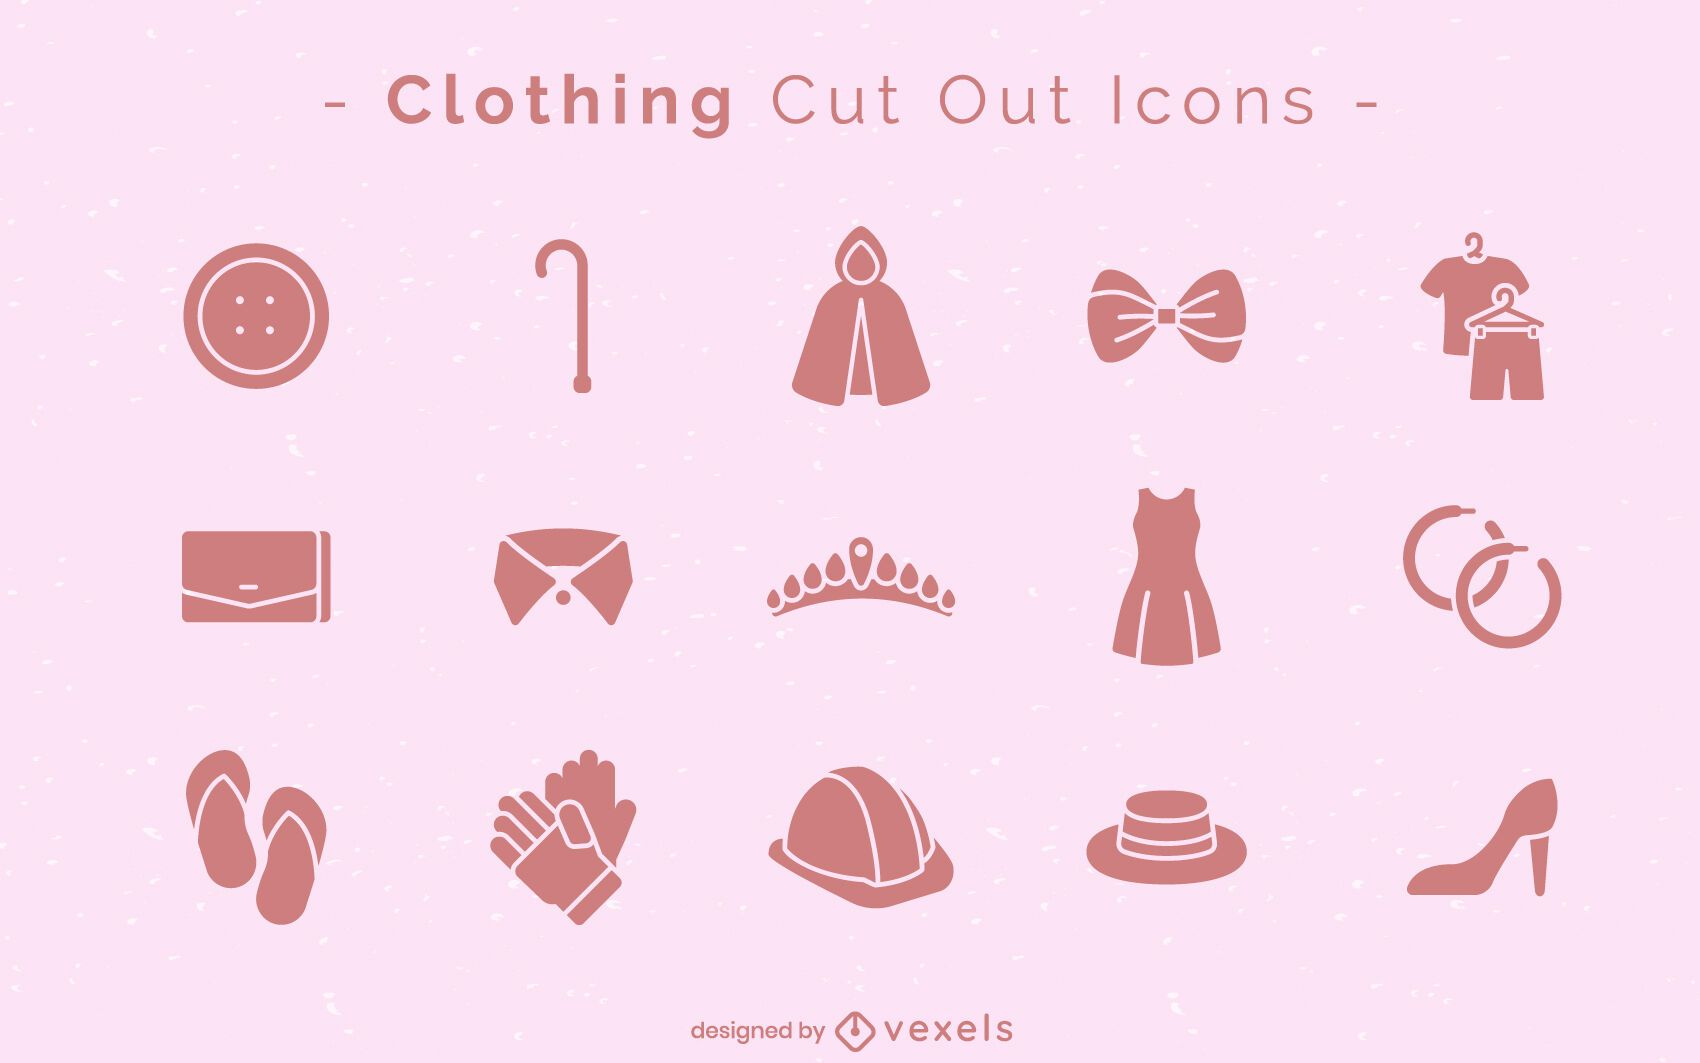 Clothing cut-out icon set